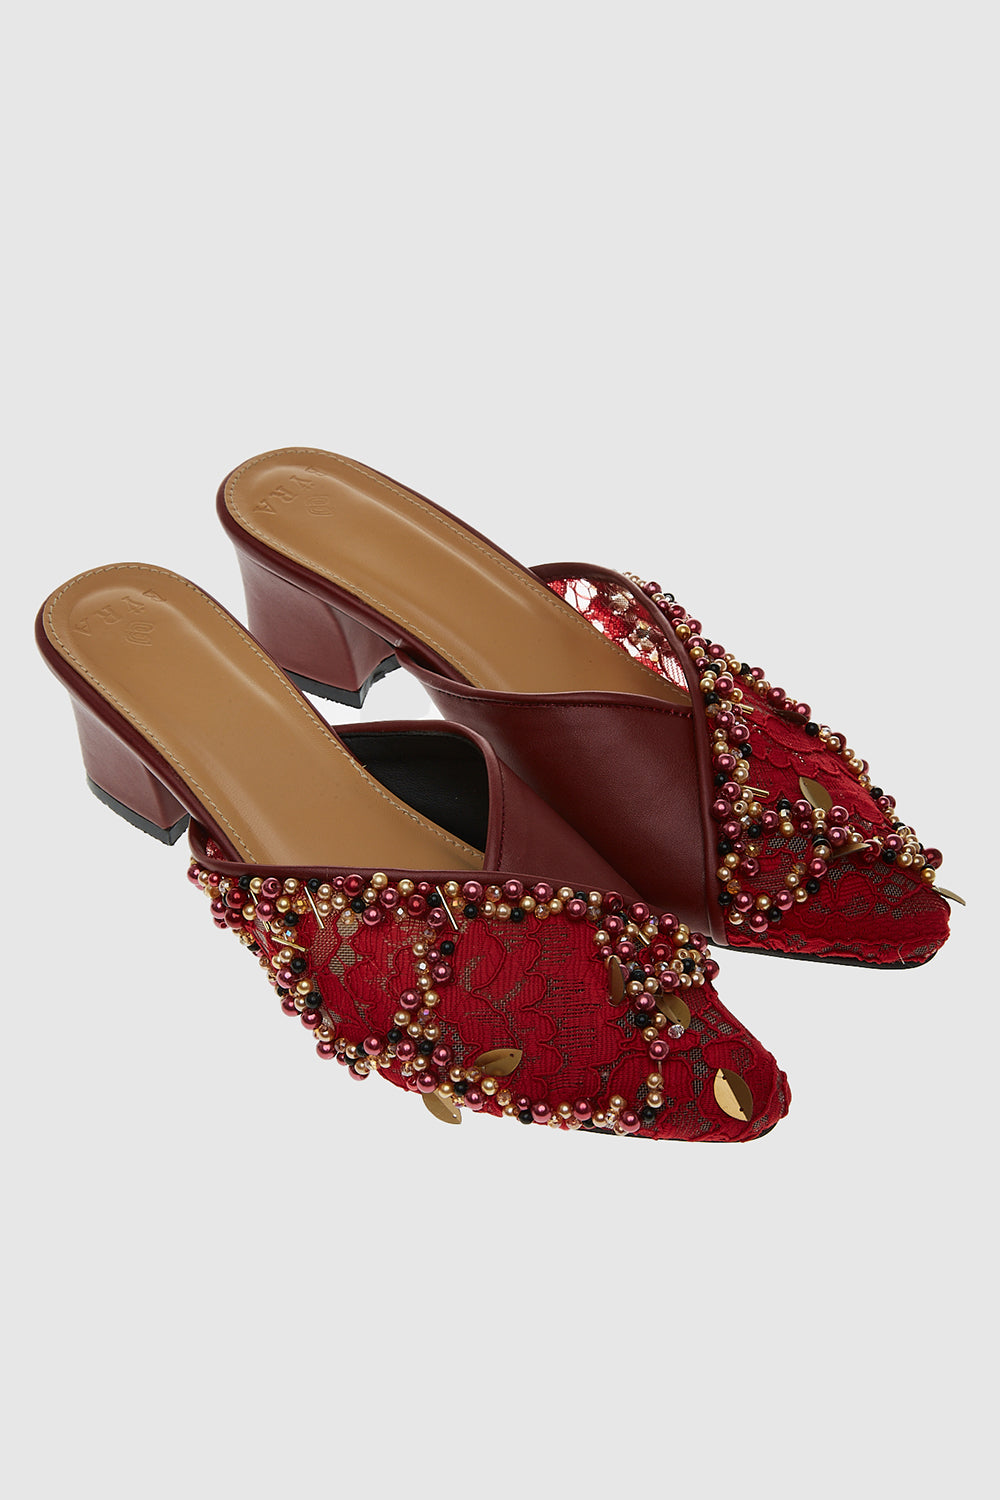 Carol Shoes in Maroon